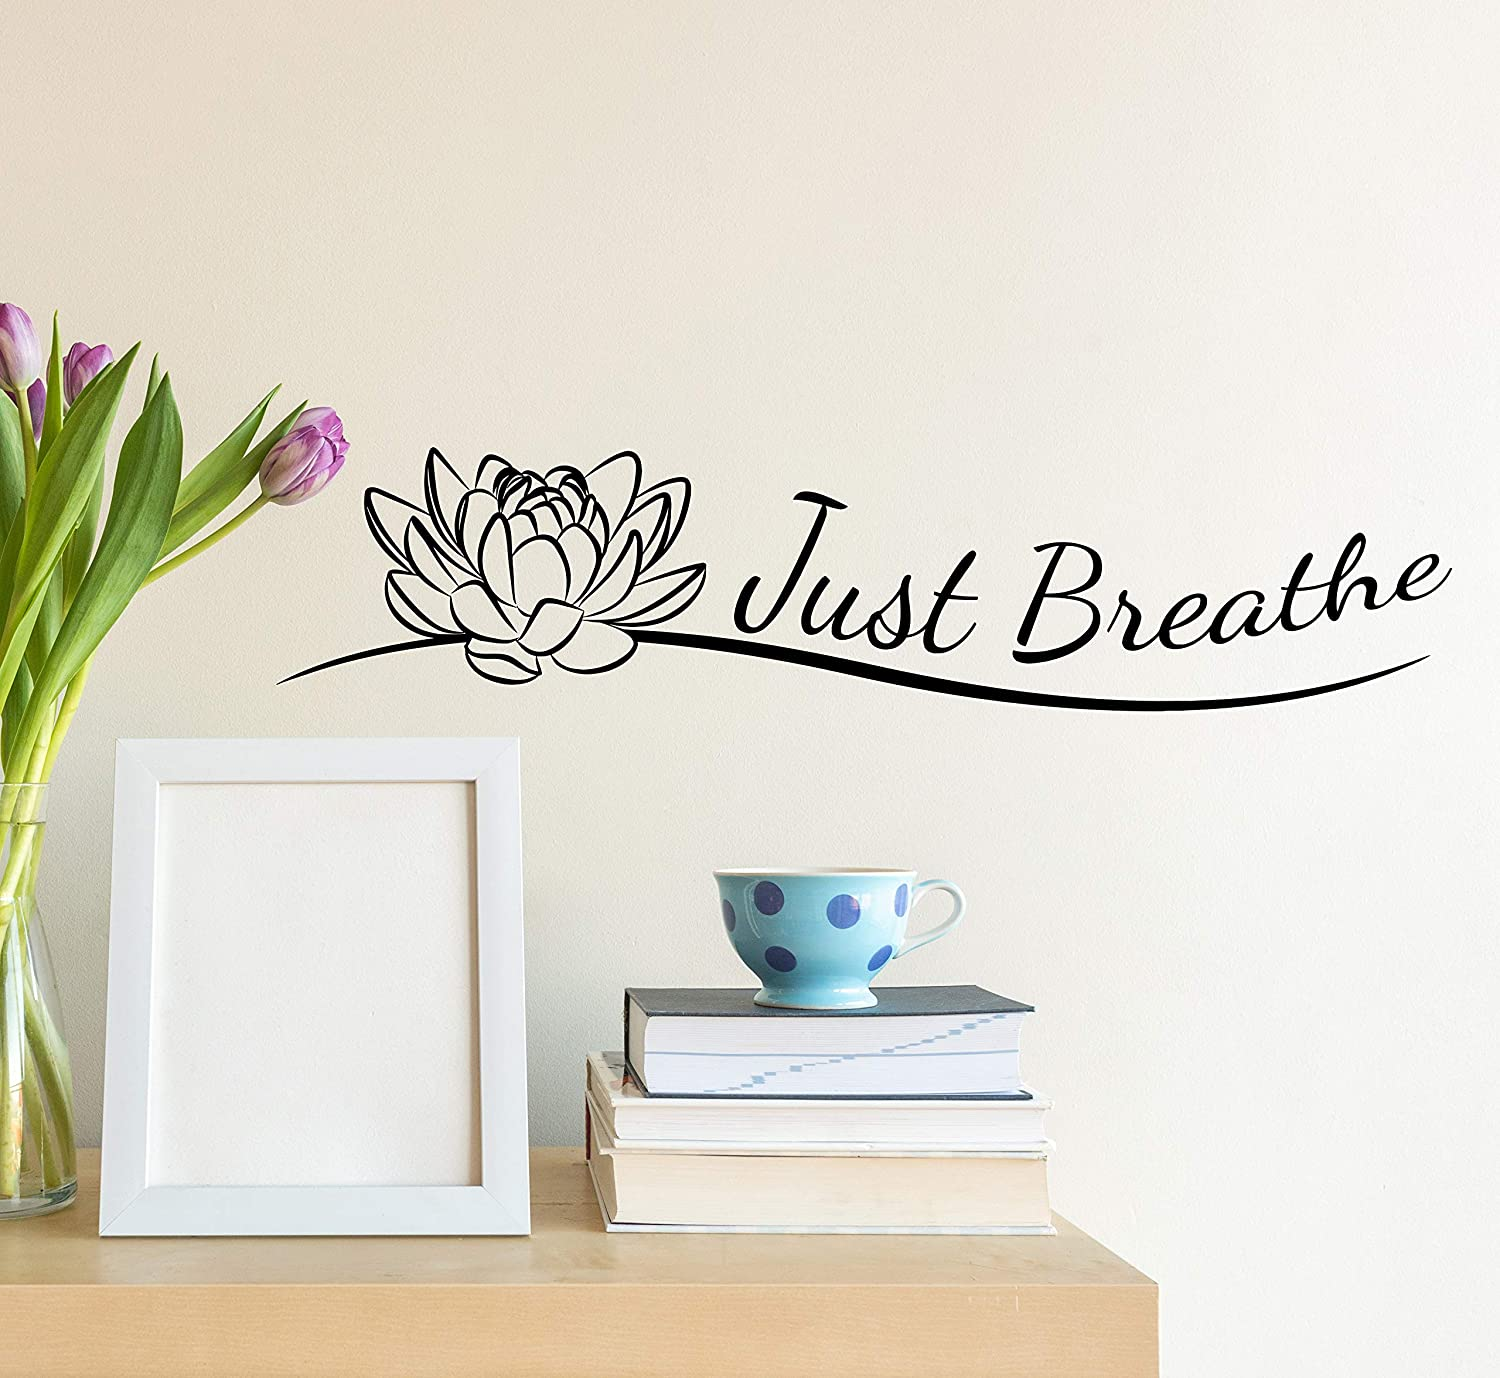 Vinyl Wall Decal Indian Yoga Studio Meditate Decor Buddhism Just Breathe Lotus Flower Stickers Mural 35 in x 8 in gz260